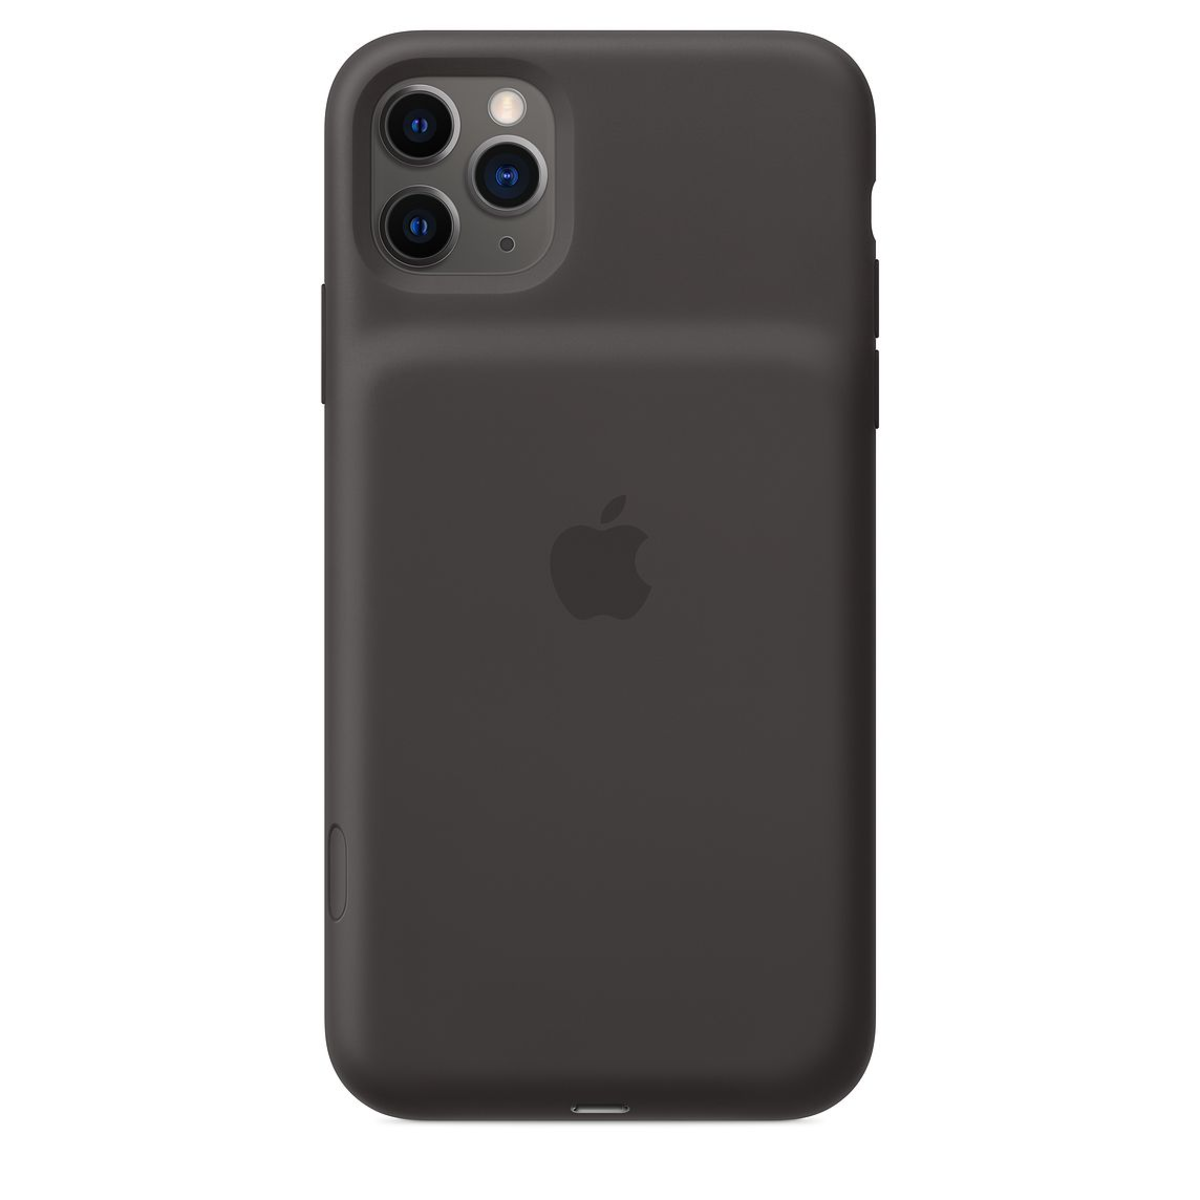 Apple iPhone 11 Smart Battery Cases